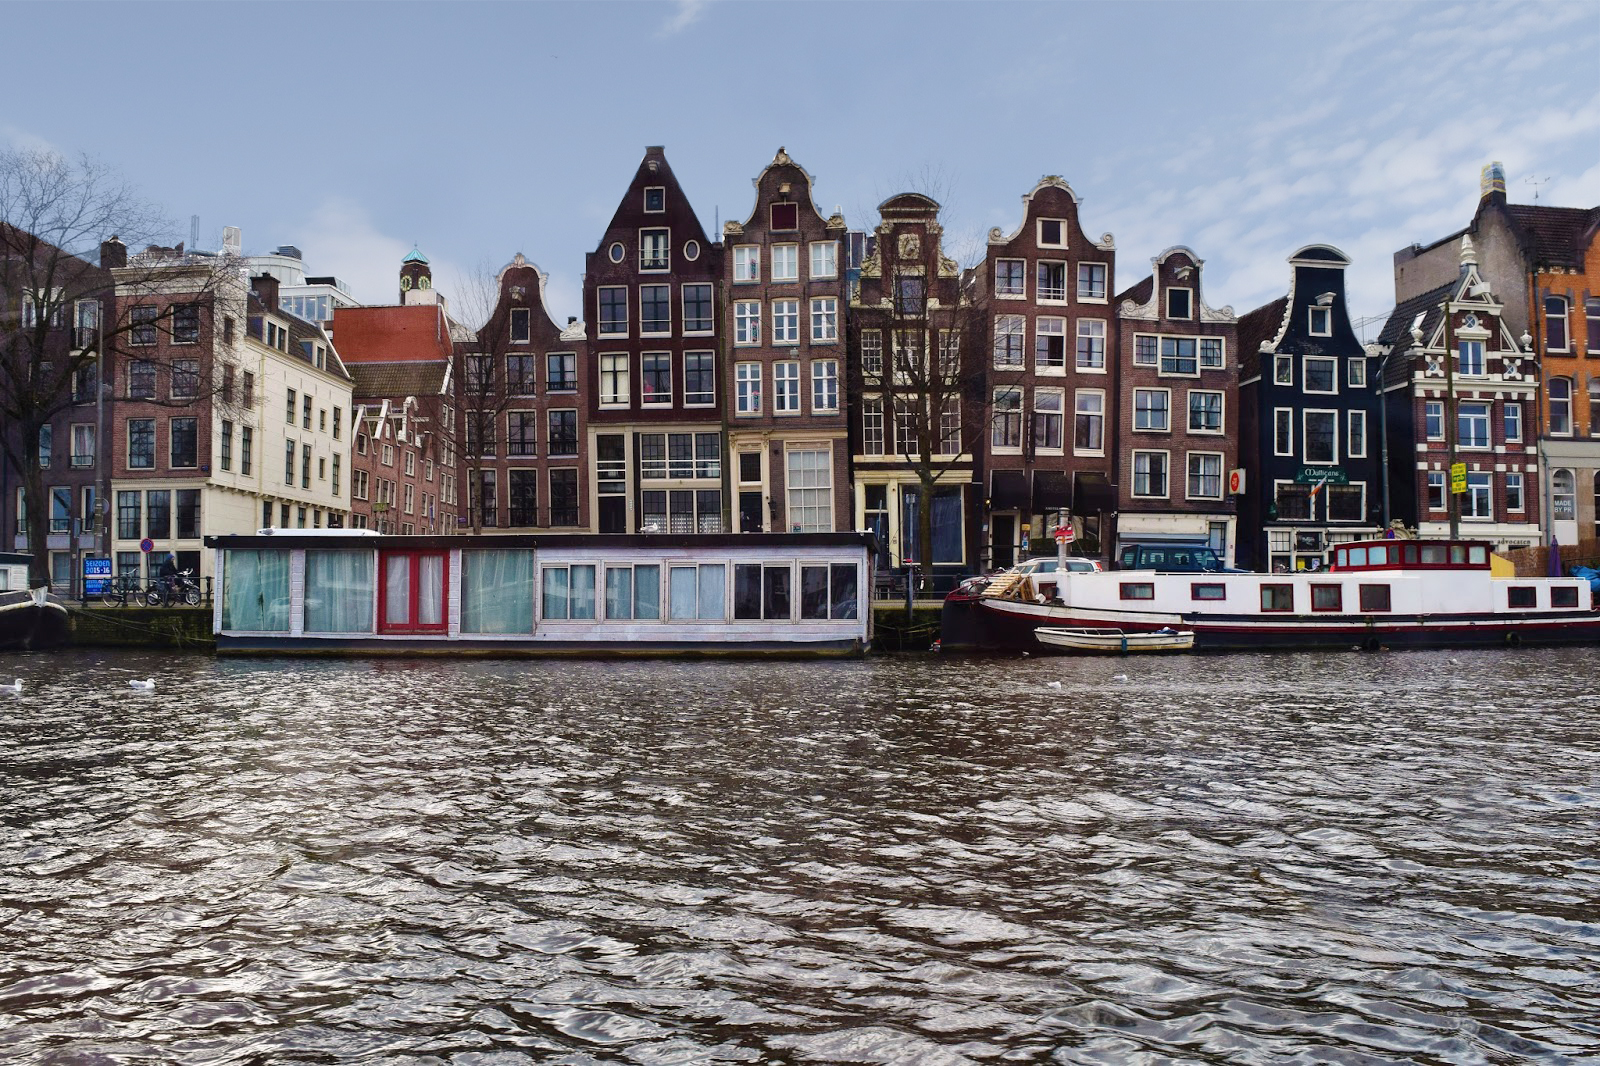 Looking across canal in Amsterdam towards tall thin wonky dutch houses.